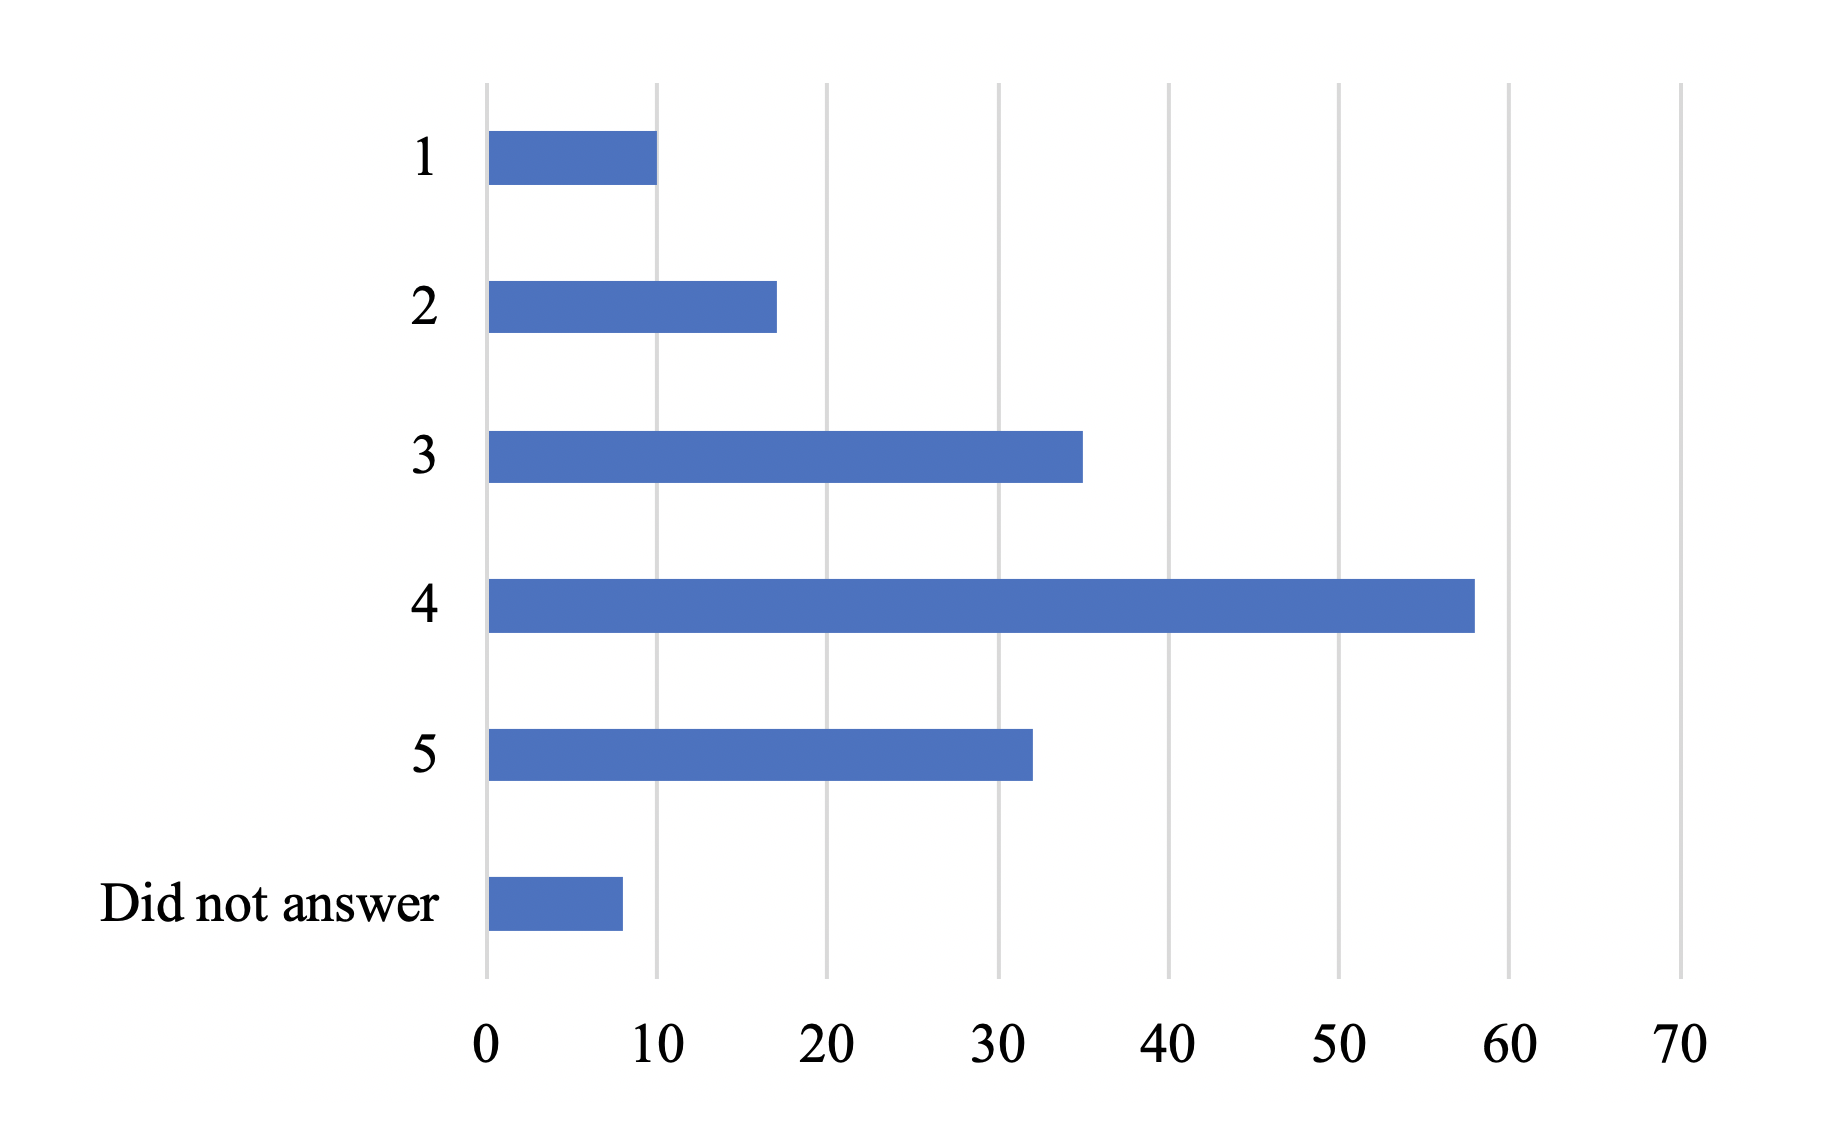 Figure 1. Survey responses related to the perceived safety of working at the museum since the pandemic has begun (where 1 indicates an individual feeling not safe, and 5 indicates those who feel very safe).